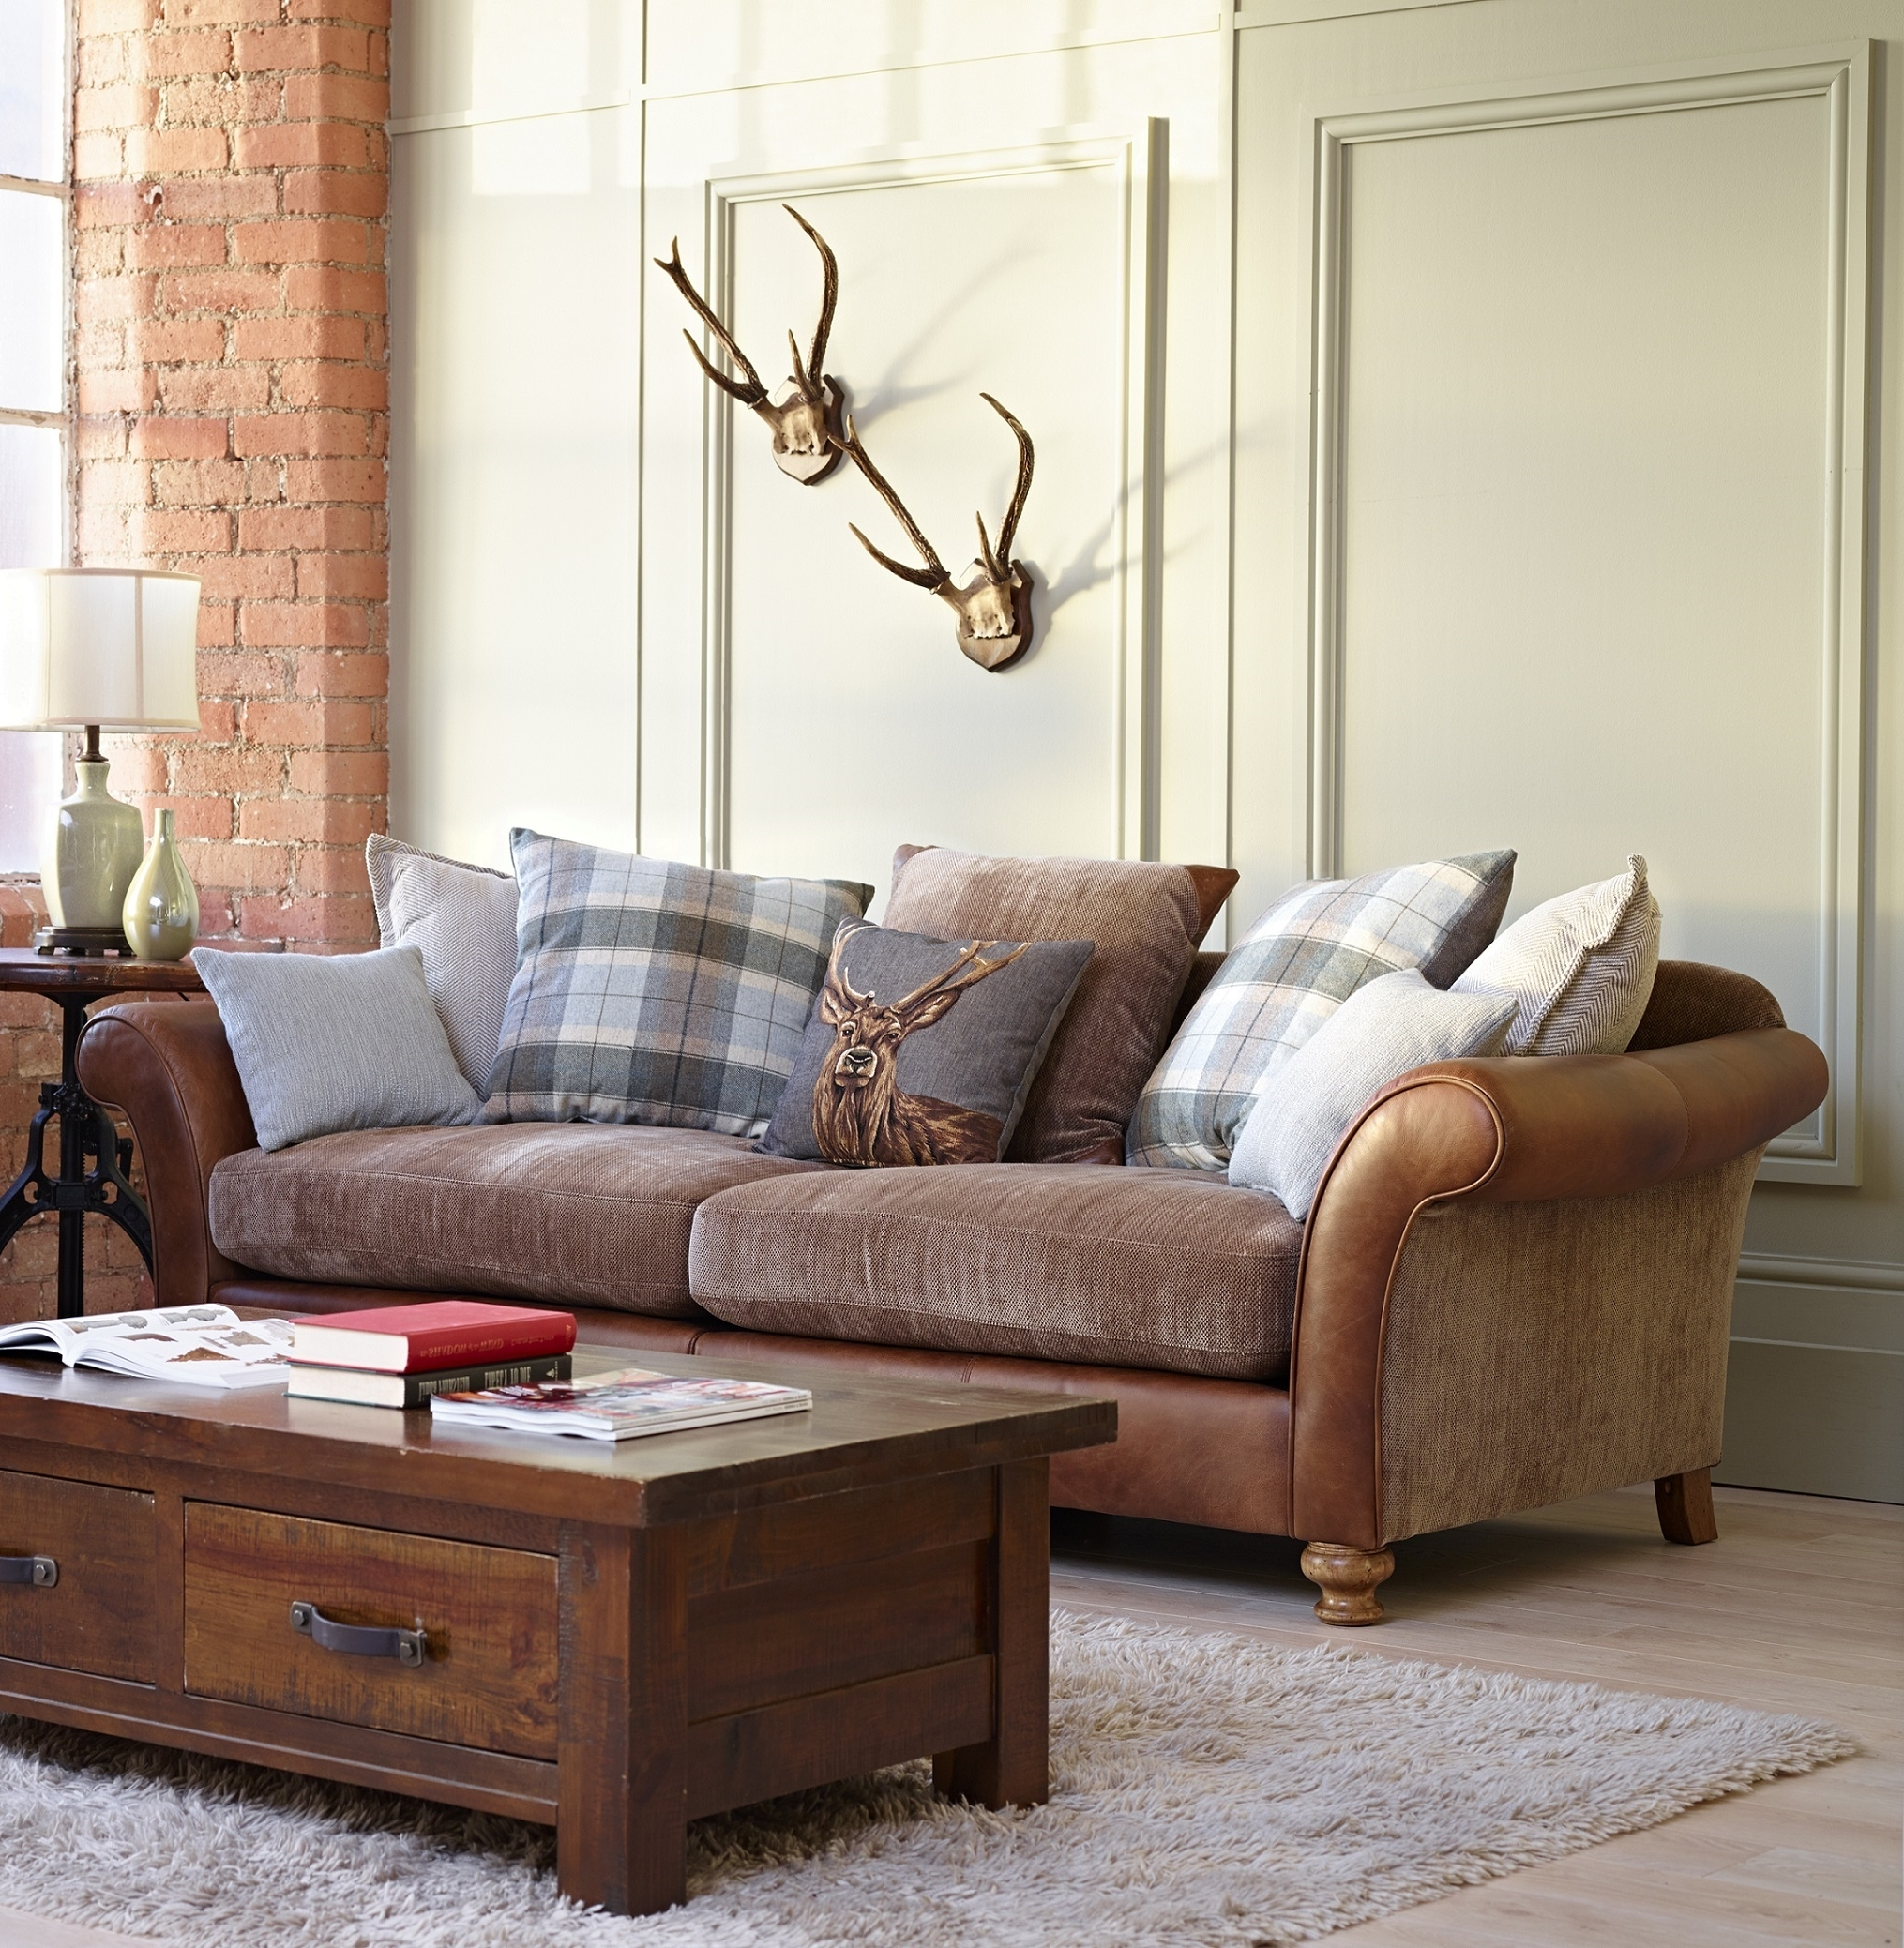 Popular Leather And Cloth Sofa Fabric Sets Sofas Uk Mix Can You Regarding Most Recently Released Leather And Cloth Sofas (View 4 of 20)